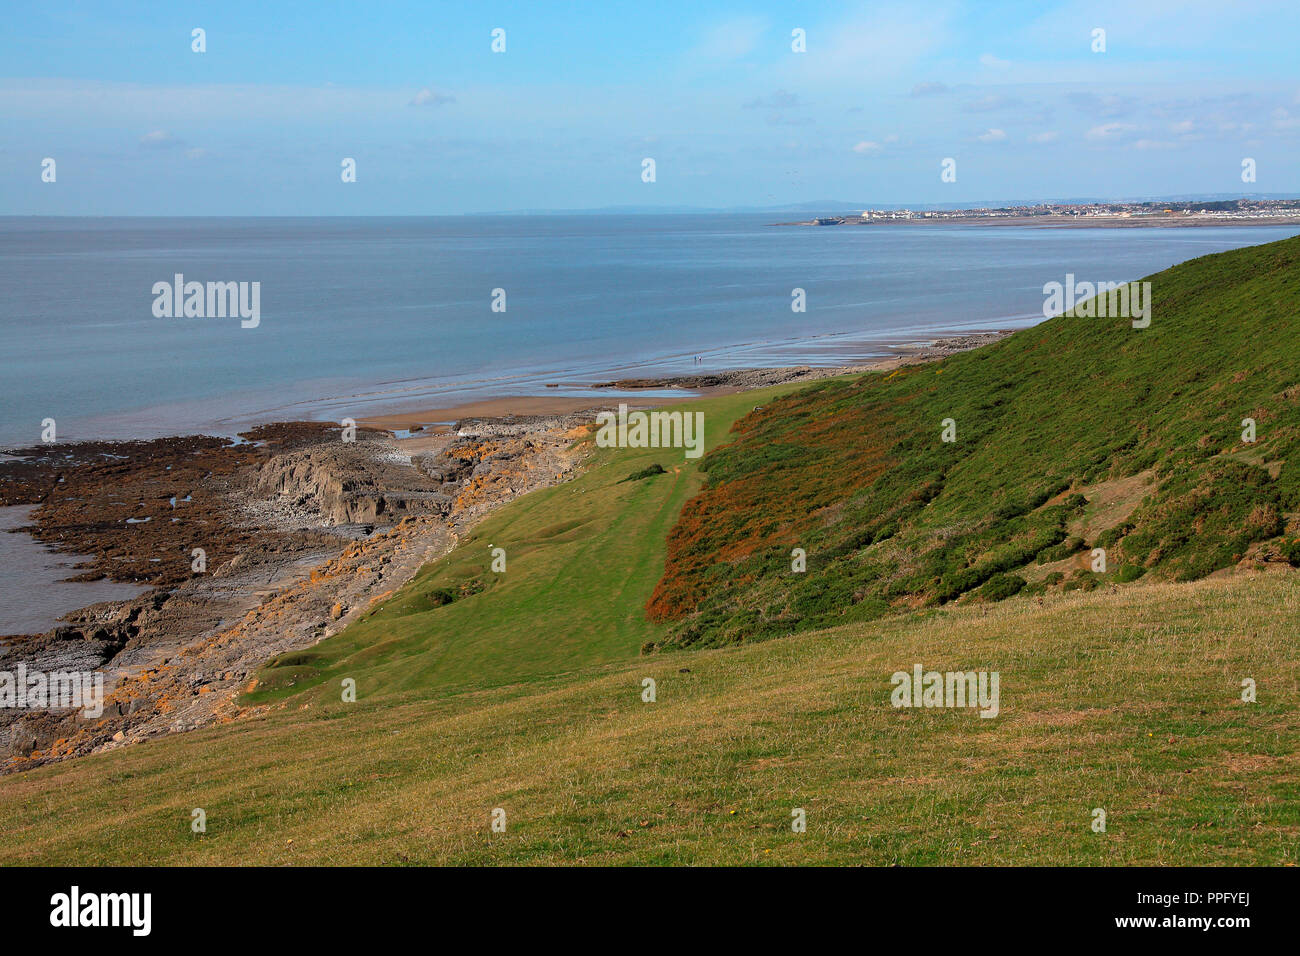 A view from the clifftop looking down onto the rocky promontary and sandy beaches of Ogmore by sea with a low tide exposing the sands. Stock Photo